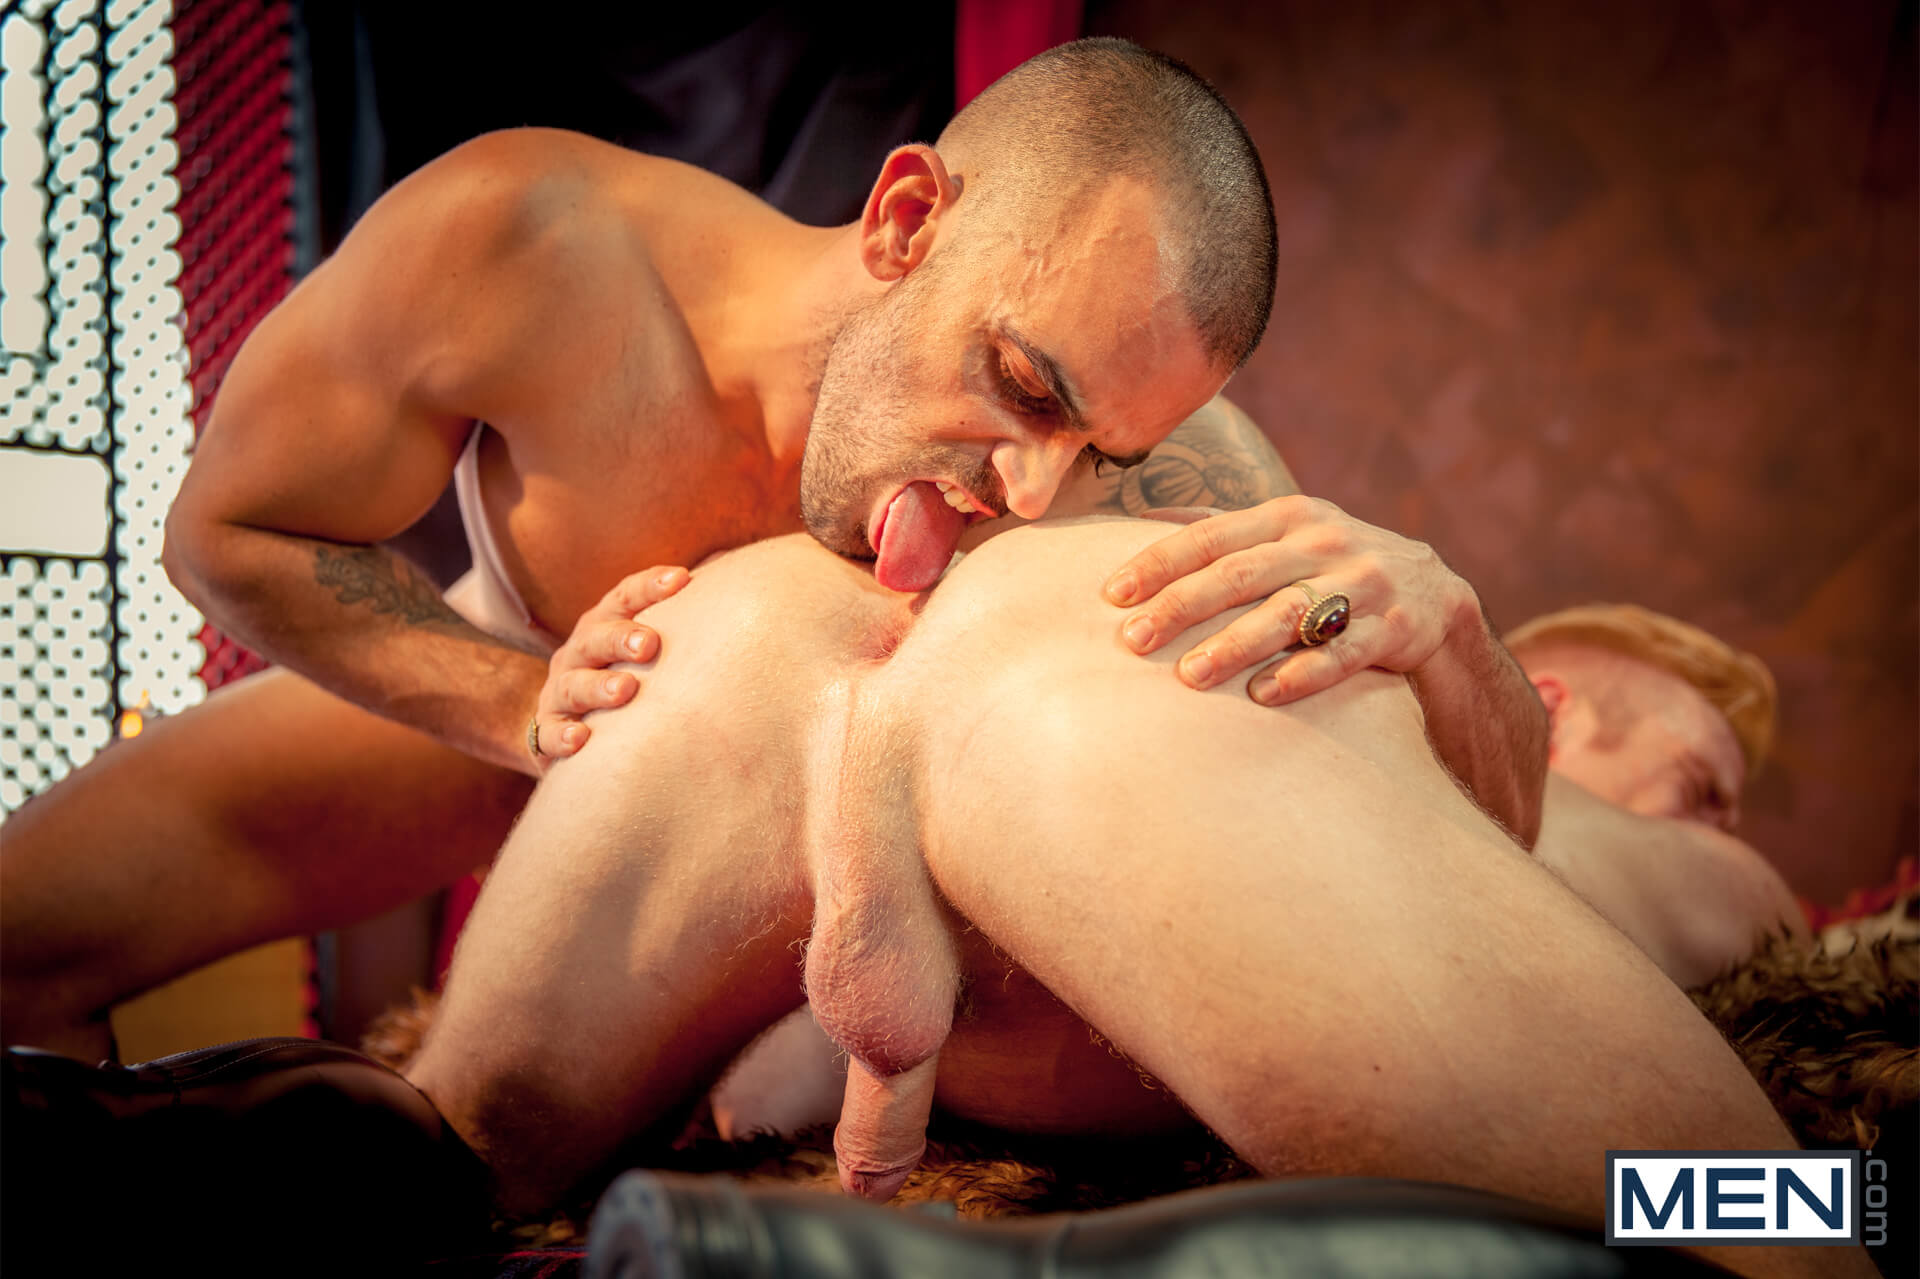 men super gay hero gay of thrones part 3 christopher daniels damien crosse gay porn blog image 10